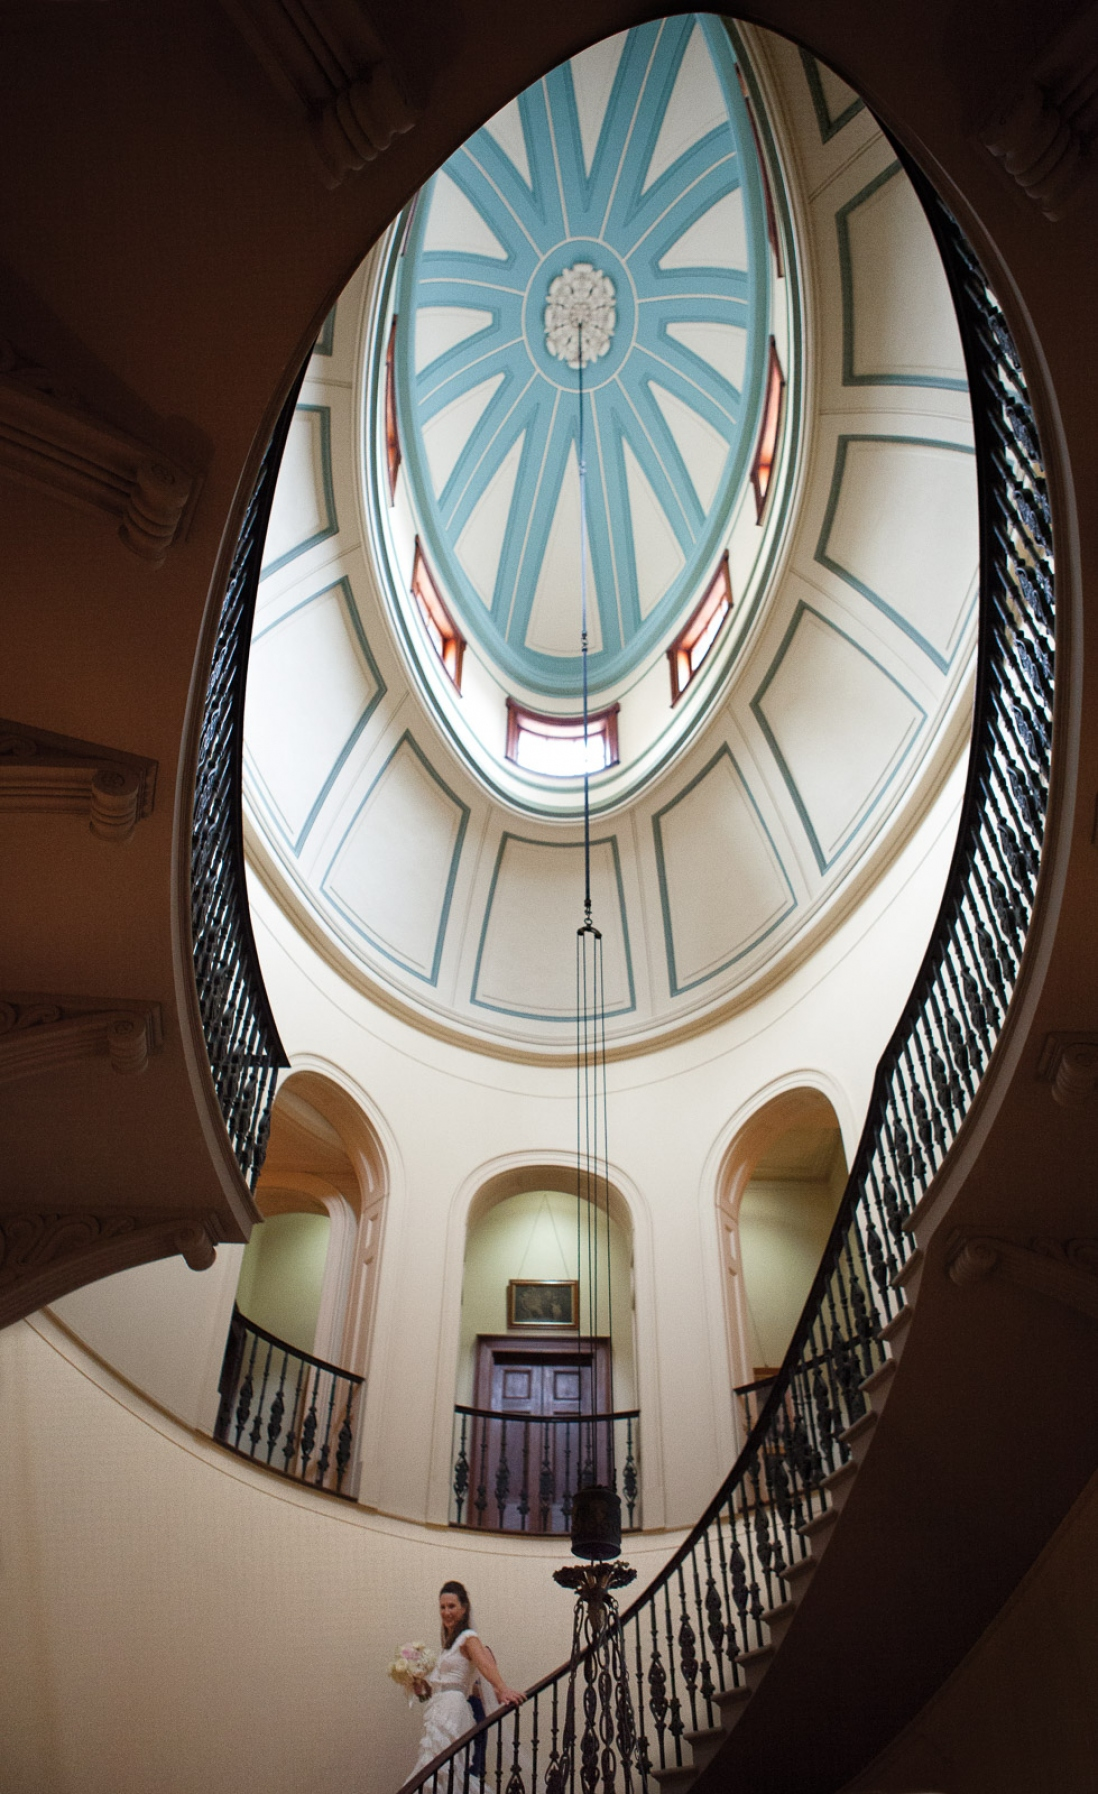 Looking up into ornate ceiling dome with spiral staircase railings.